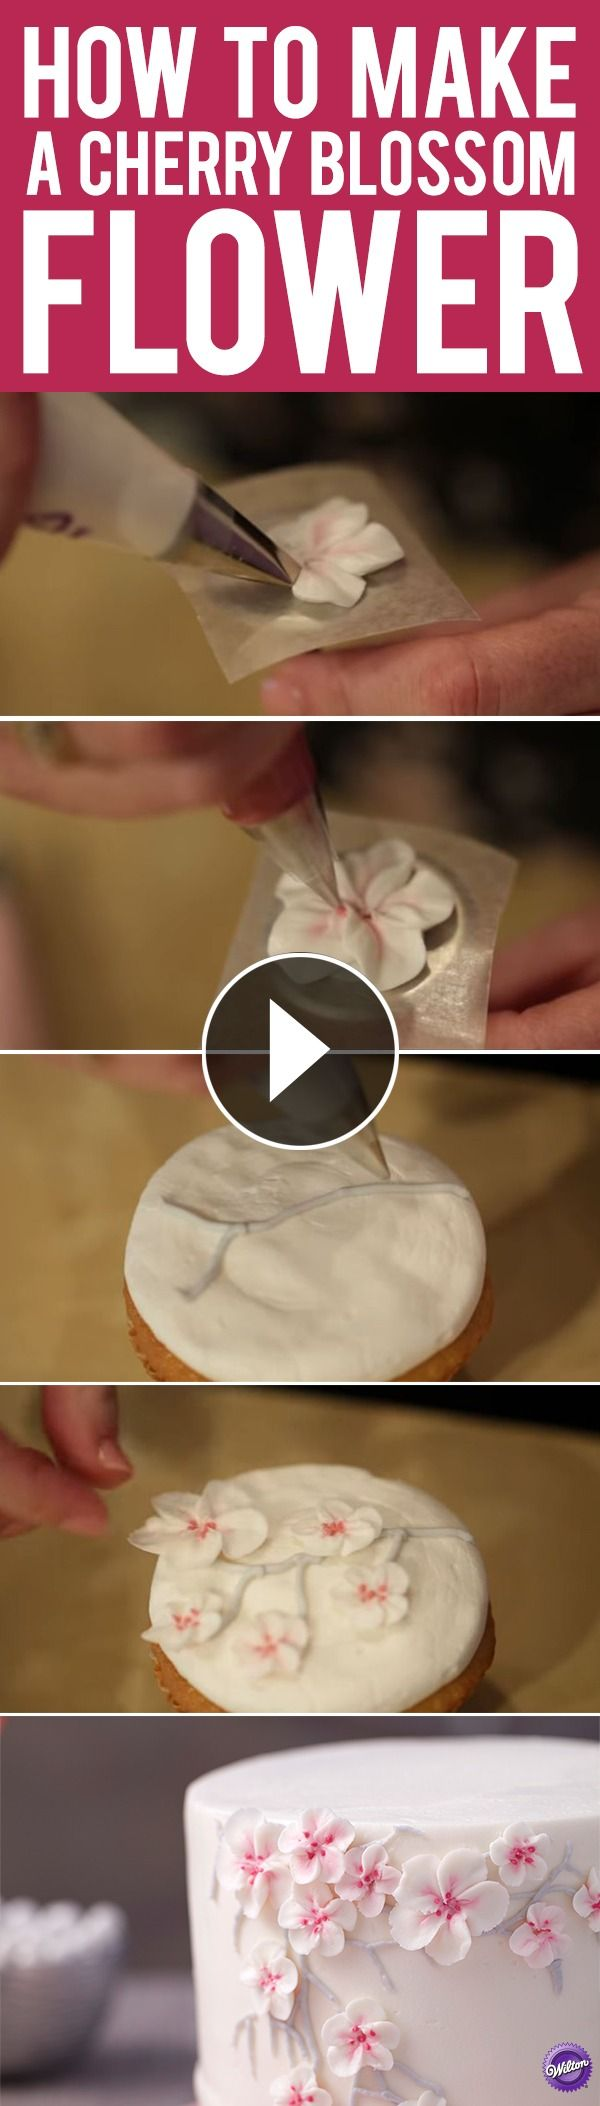 Learn How To Make A Buttercream Cherry Blossom Flower That Would Add Beauty  To Any Cake